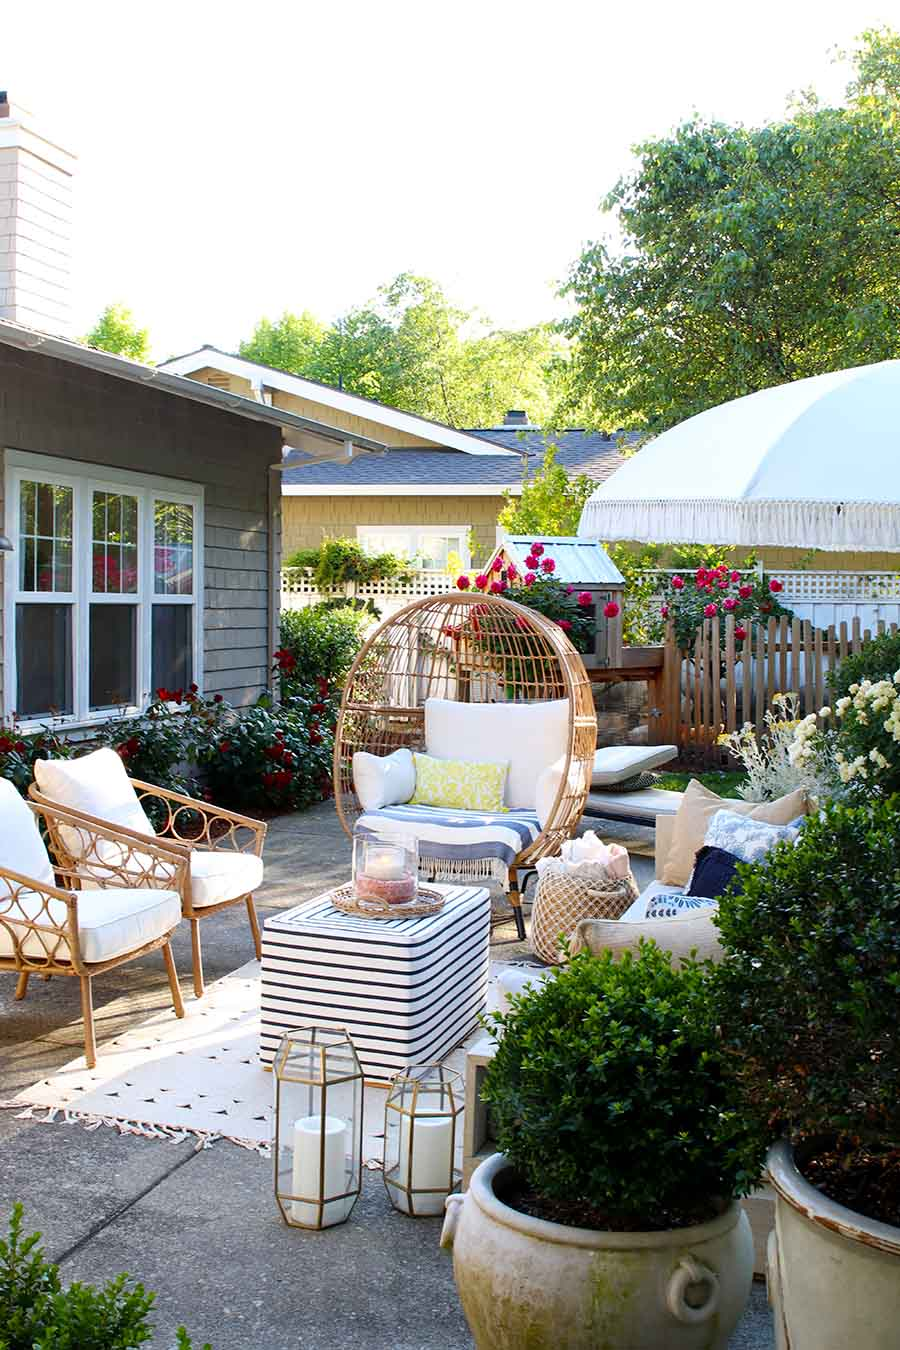 Outdoor decorating Ideas: My Summer Porch and Patio ... on My Patio Design id=37050